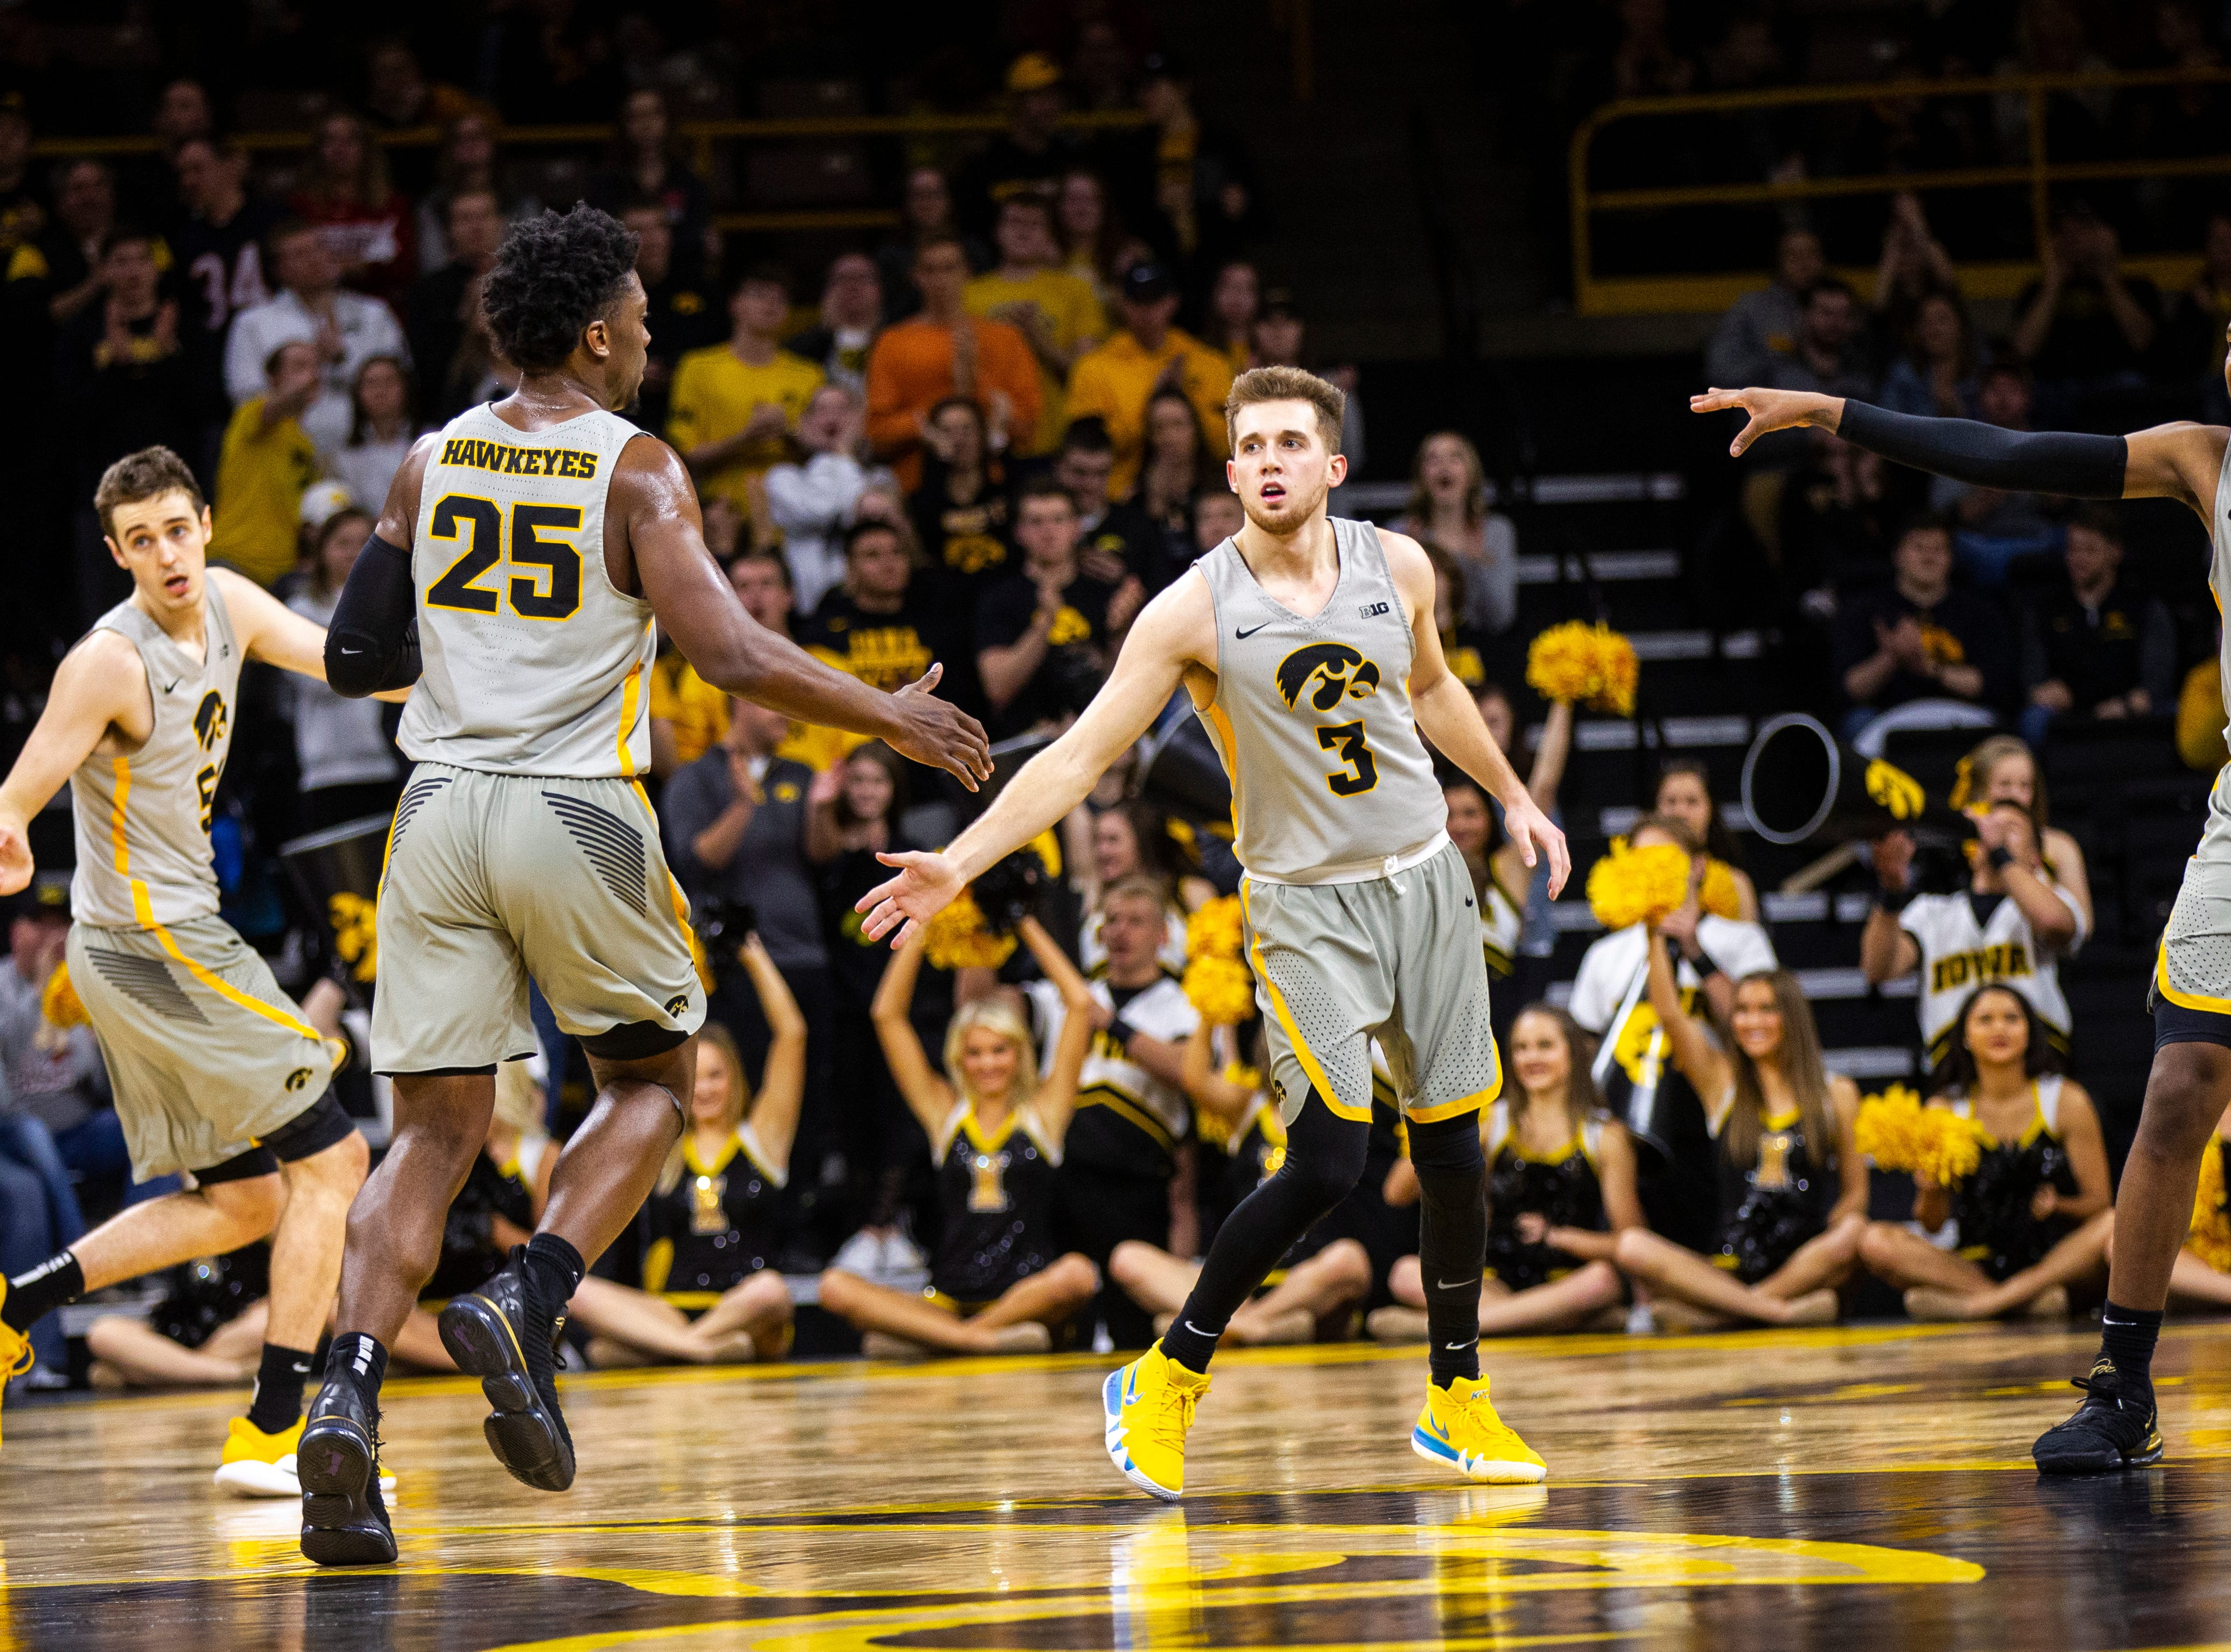 Iowa guard Jordan Bohannon (3) gets a high-five from Iowa forward Tyler Cook (25) while teammates Nicholas Baer (51) and Isaiah Moss (4) settle in on defense during a NCAA Big Ten Conference men's basketball game on Sunday, Jan. 6, 2019, at the Carver-Hawkeye Arena in Iowa City, Iowa.